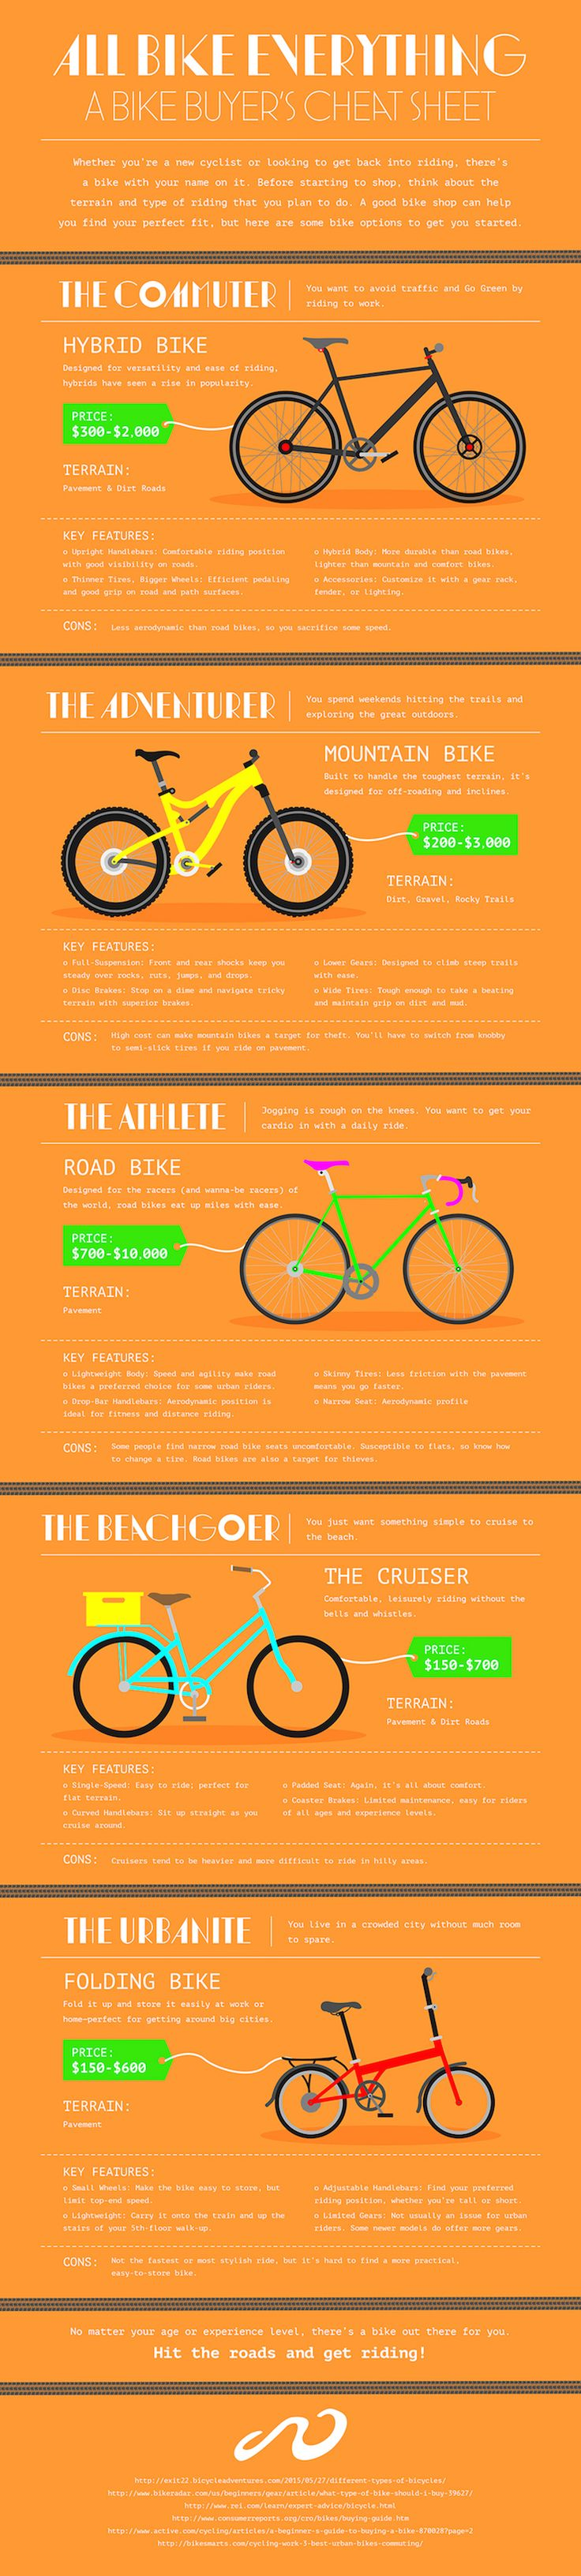 Bicycle Types: How to Find the Right Bike. A bike buyer's cheat sheet.